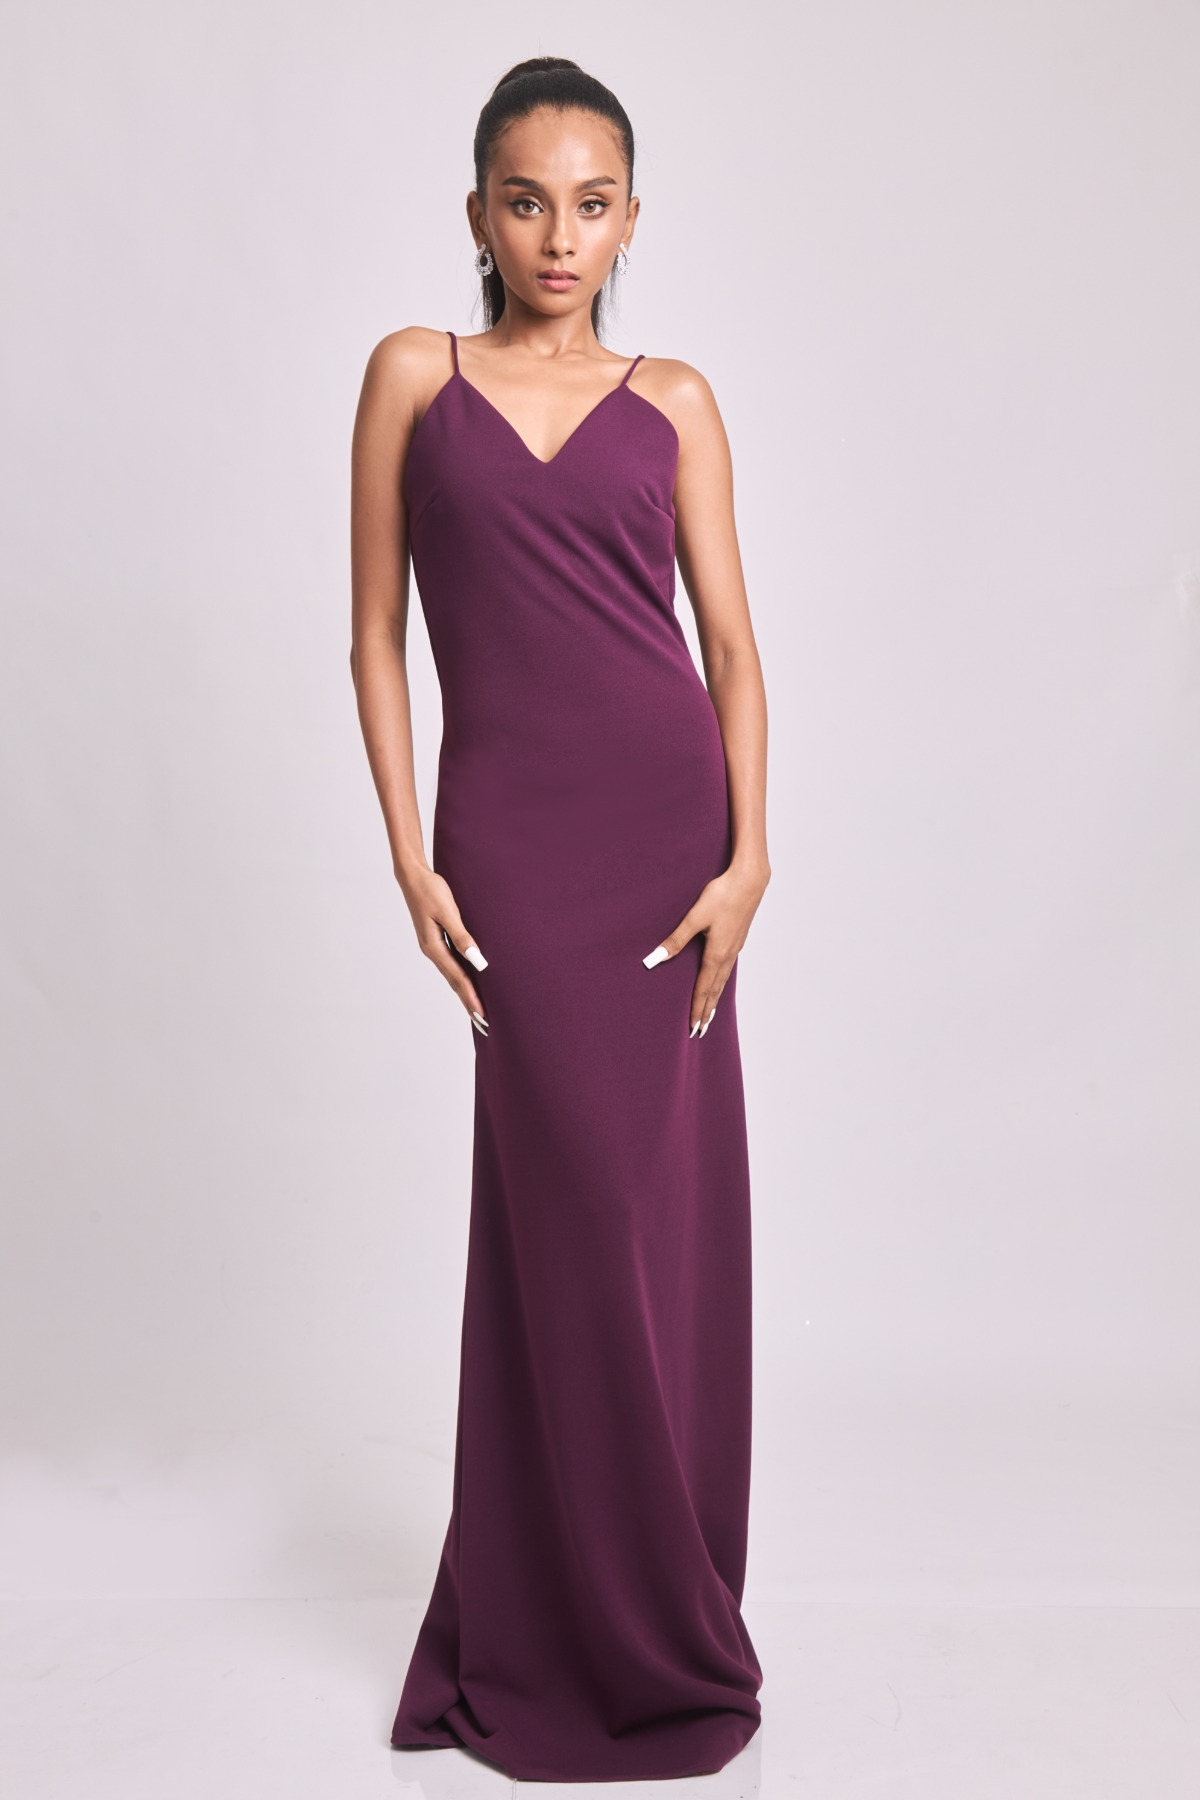 Pia Gladys Perey SS2022 Collection Launch